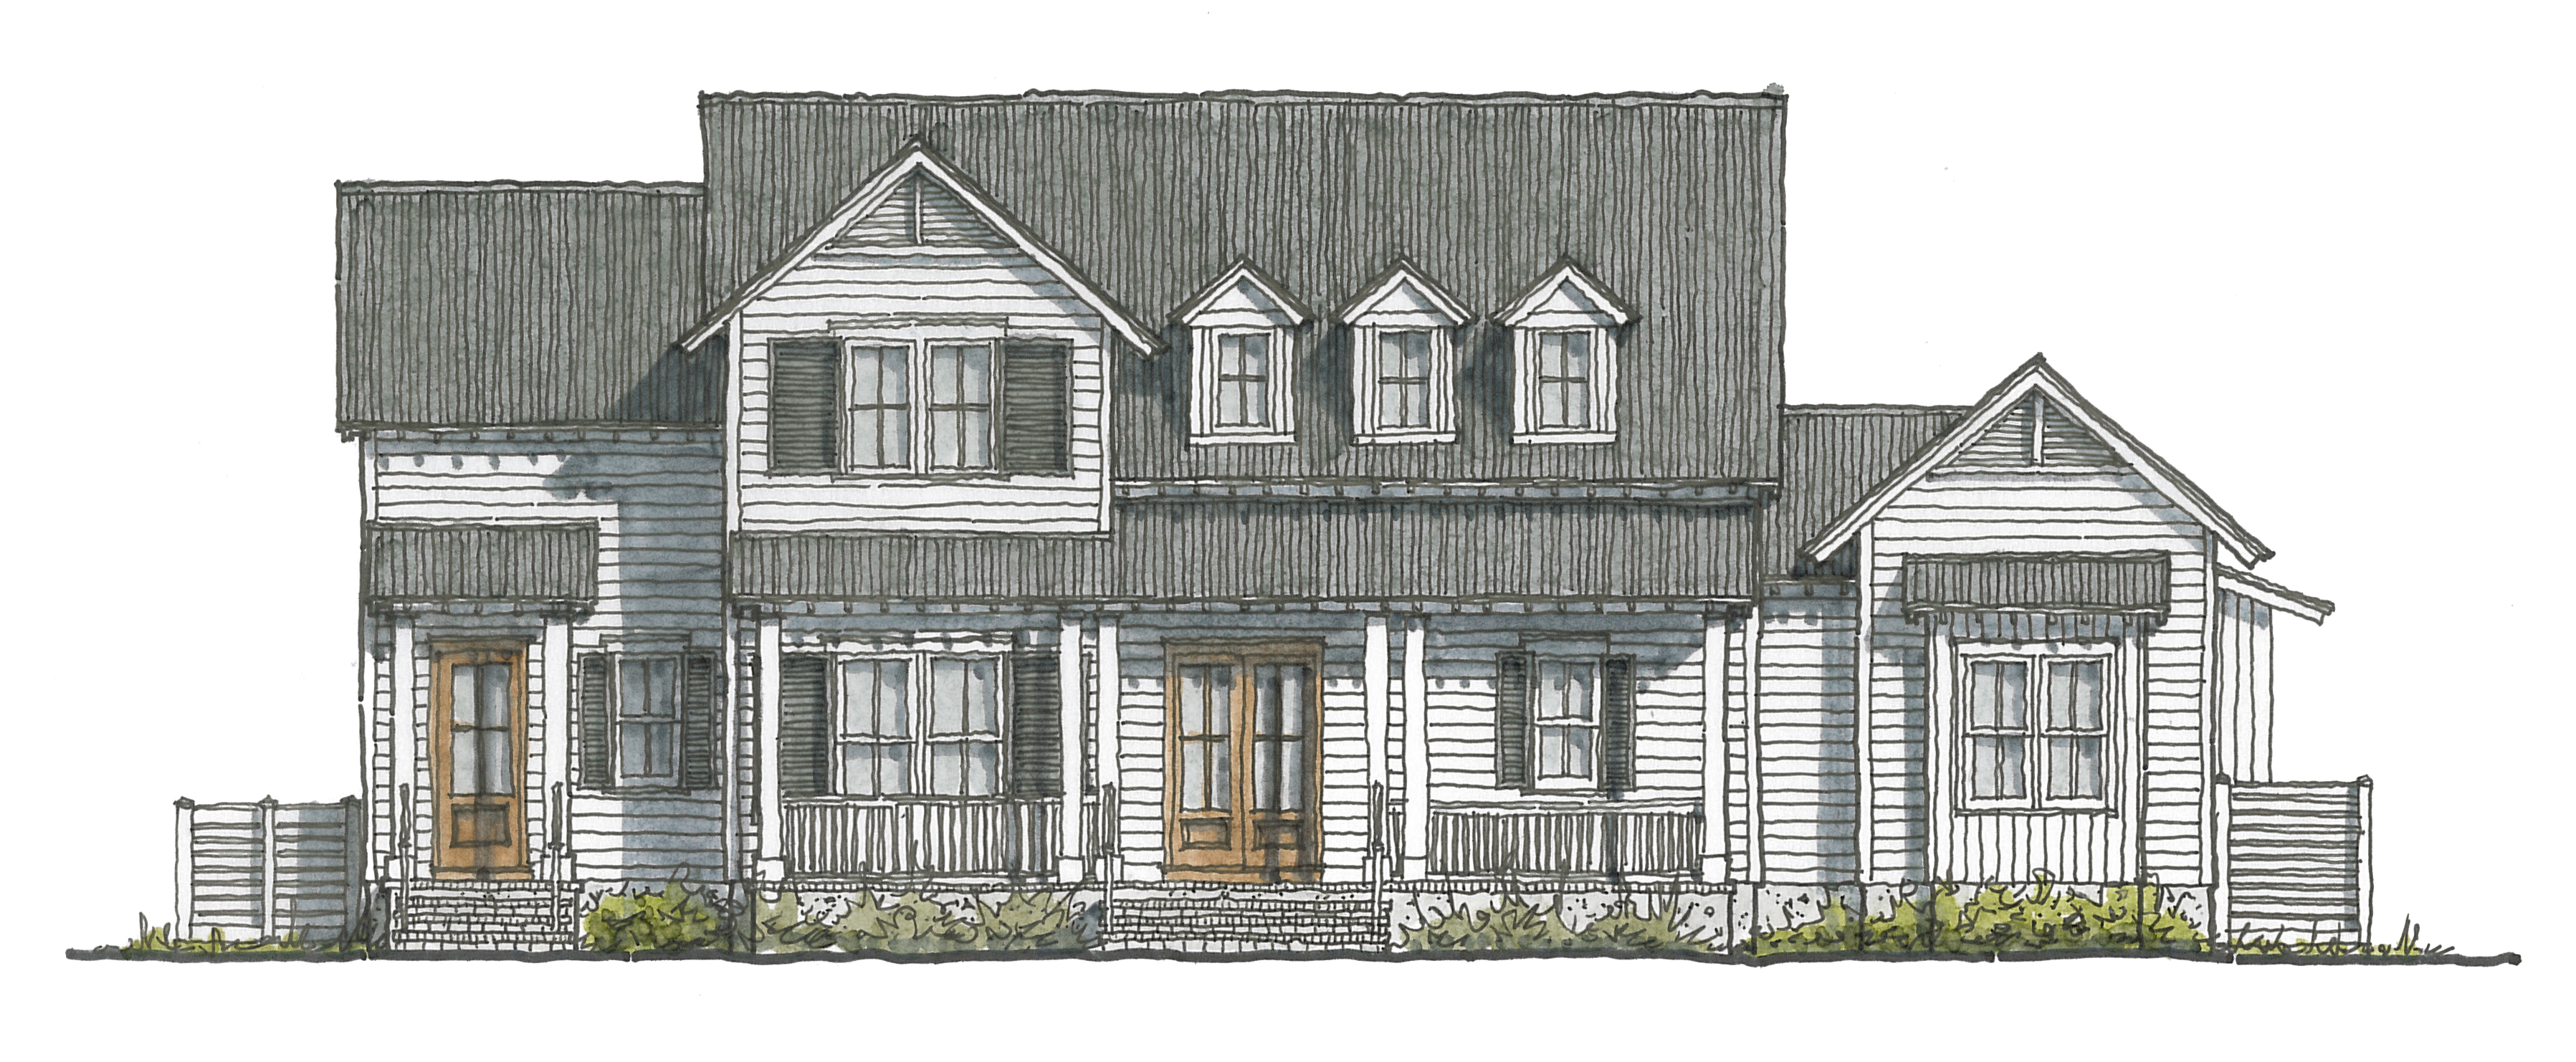 Private Residence in Palmetto Bluff0.03.24 Skiba Front Elevation Sketch.